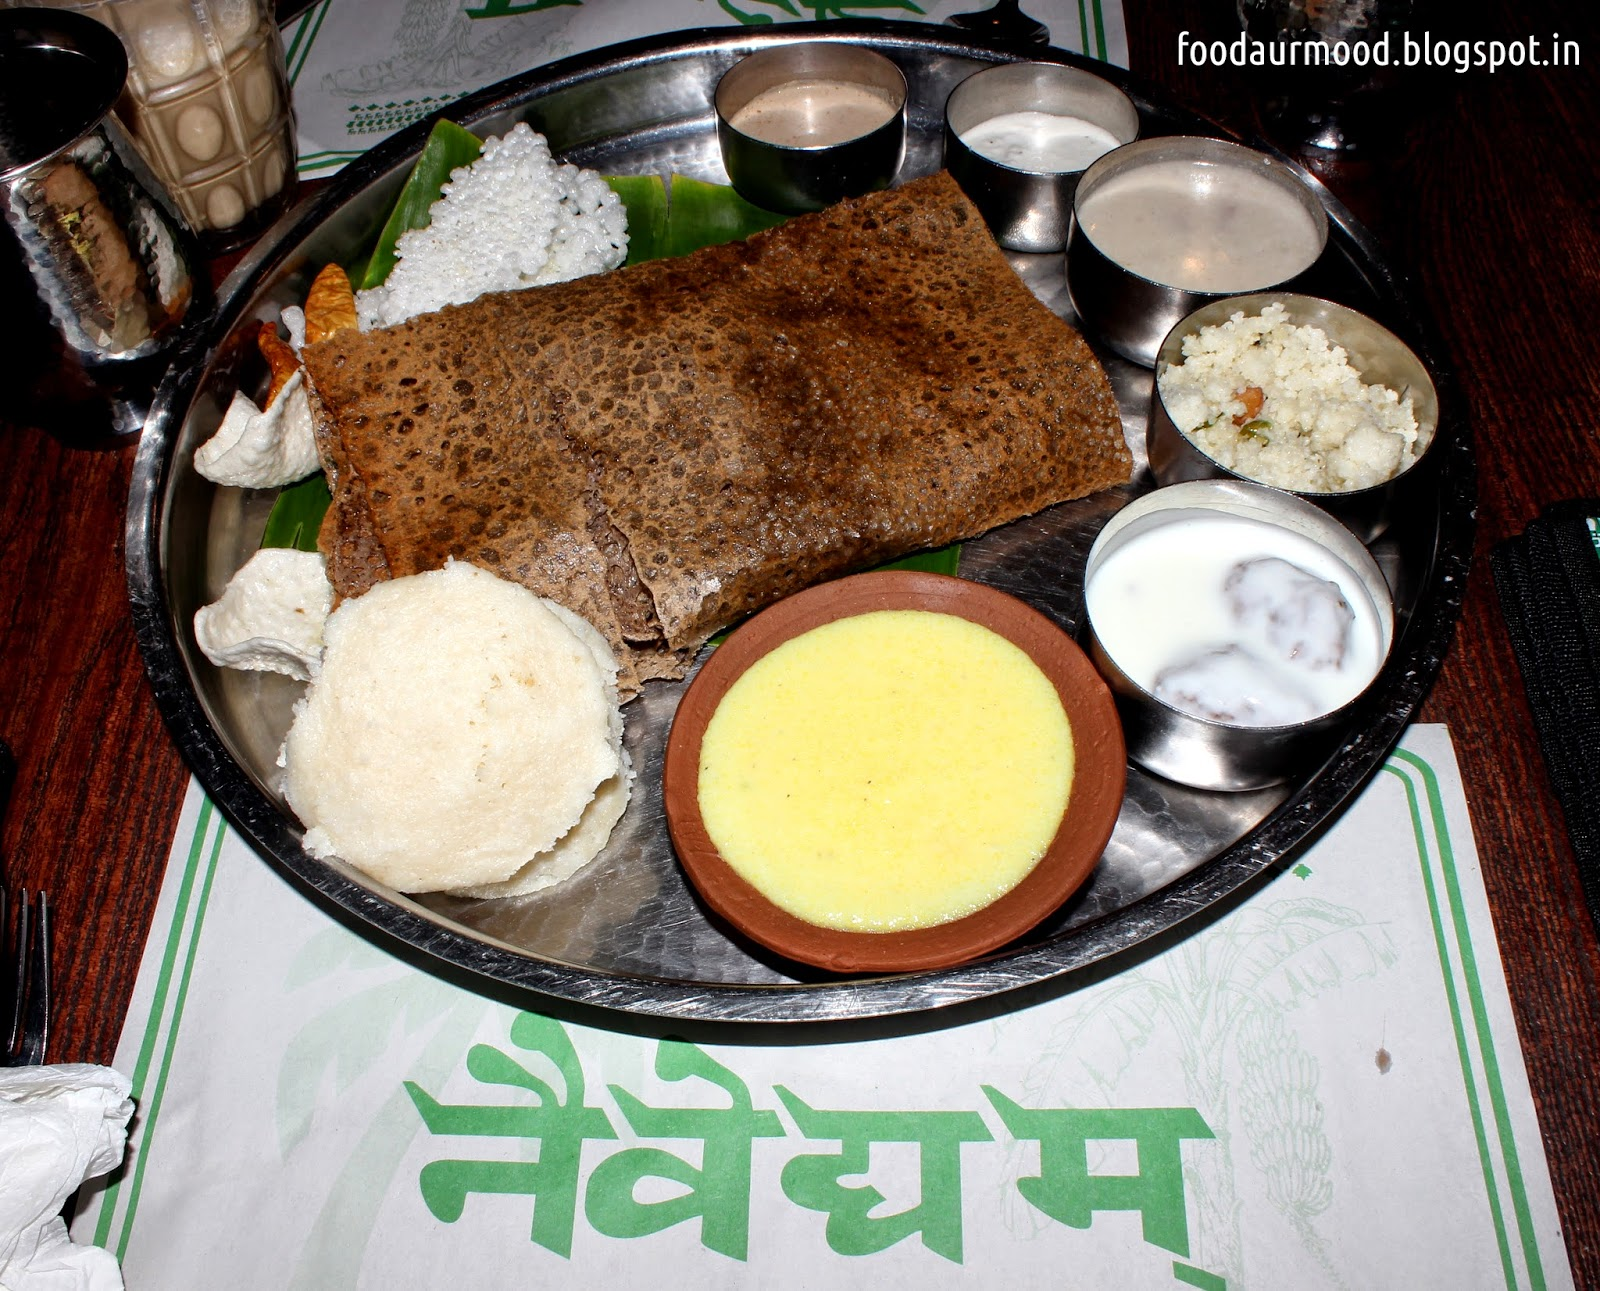 Thali, Navratra, Fasting meals, Vrat